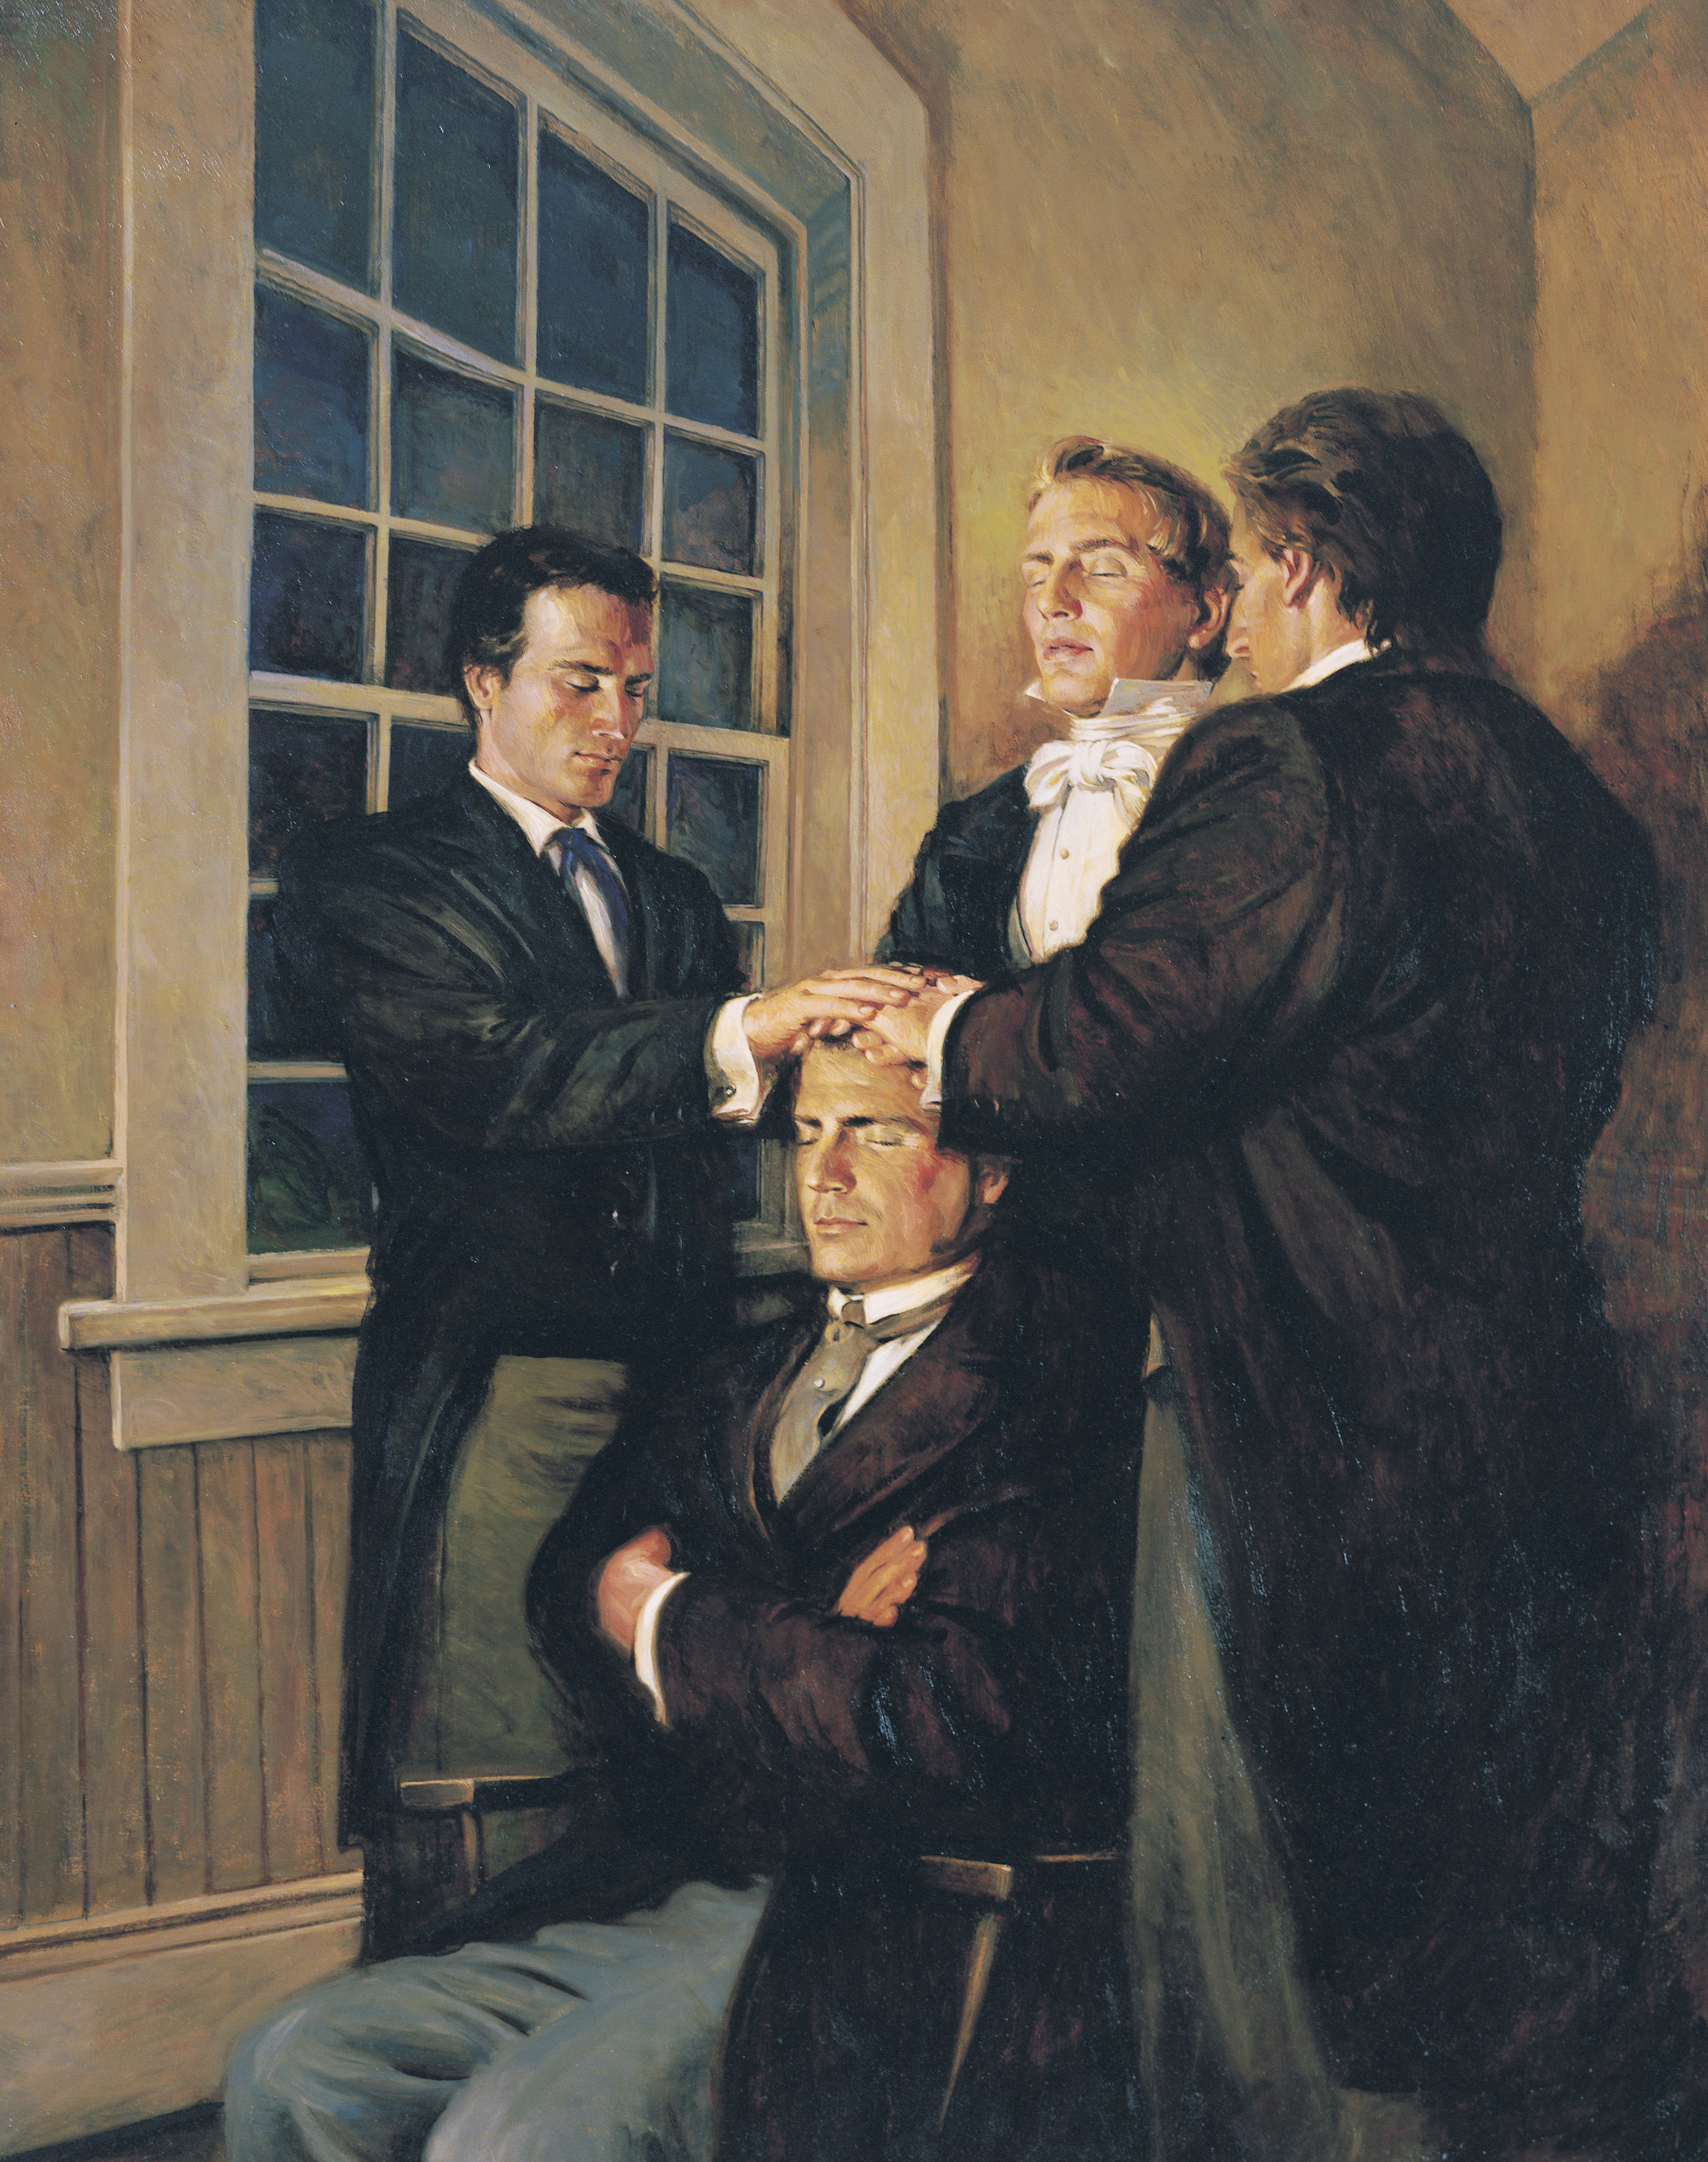 Joseph Smith Ordaining Parley P. Pratt as an Apostle, by Walter Rane